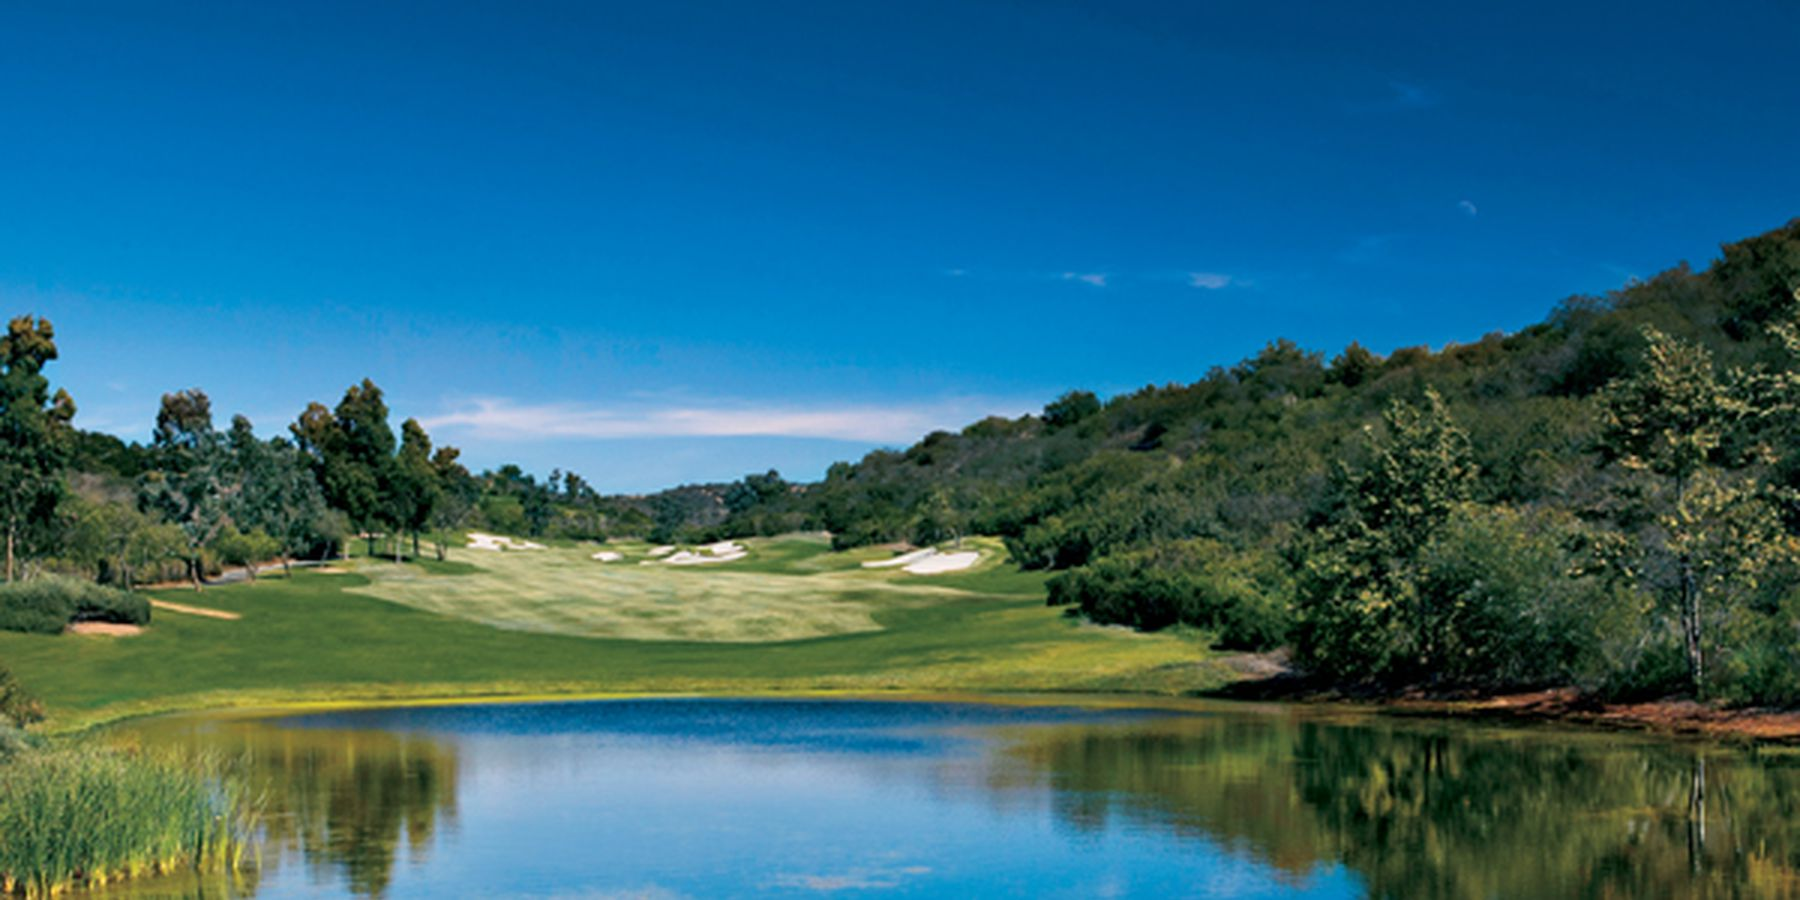 Del Mar - The Grand Golf Club - Golfen California - Amerika - Doets Reizen